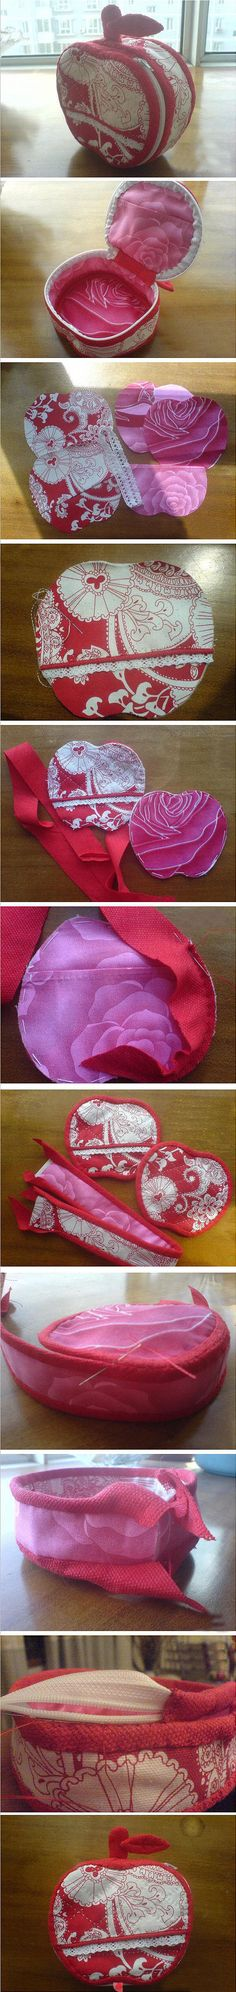 apple sewing box ► the apple idea is cute, but this also shows a great way to make a box shaped case Sewing Hacks, Sewing Tutorials, Sewing Crafts, Sewing Projects, Sewing Box, Love Sewing, Patchwork Quilt, Diy Handbag, Fabric Purses